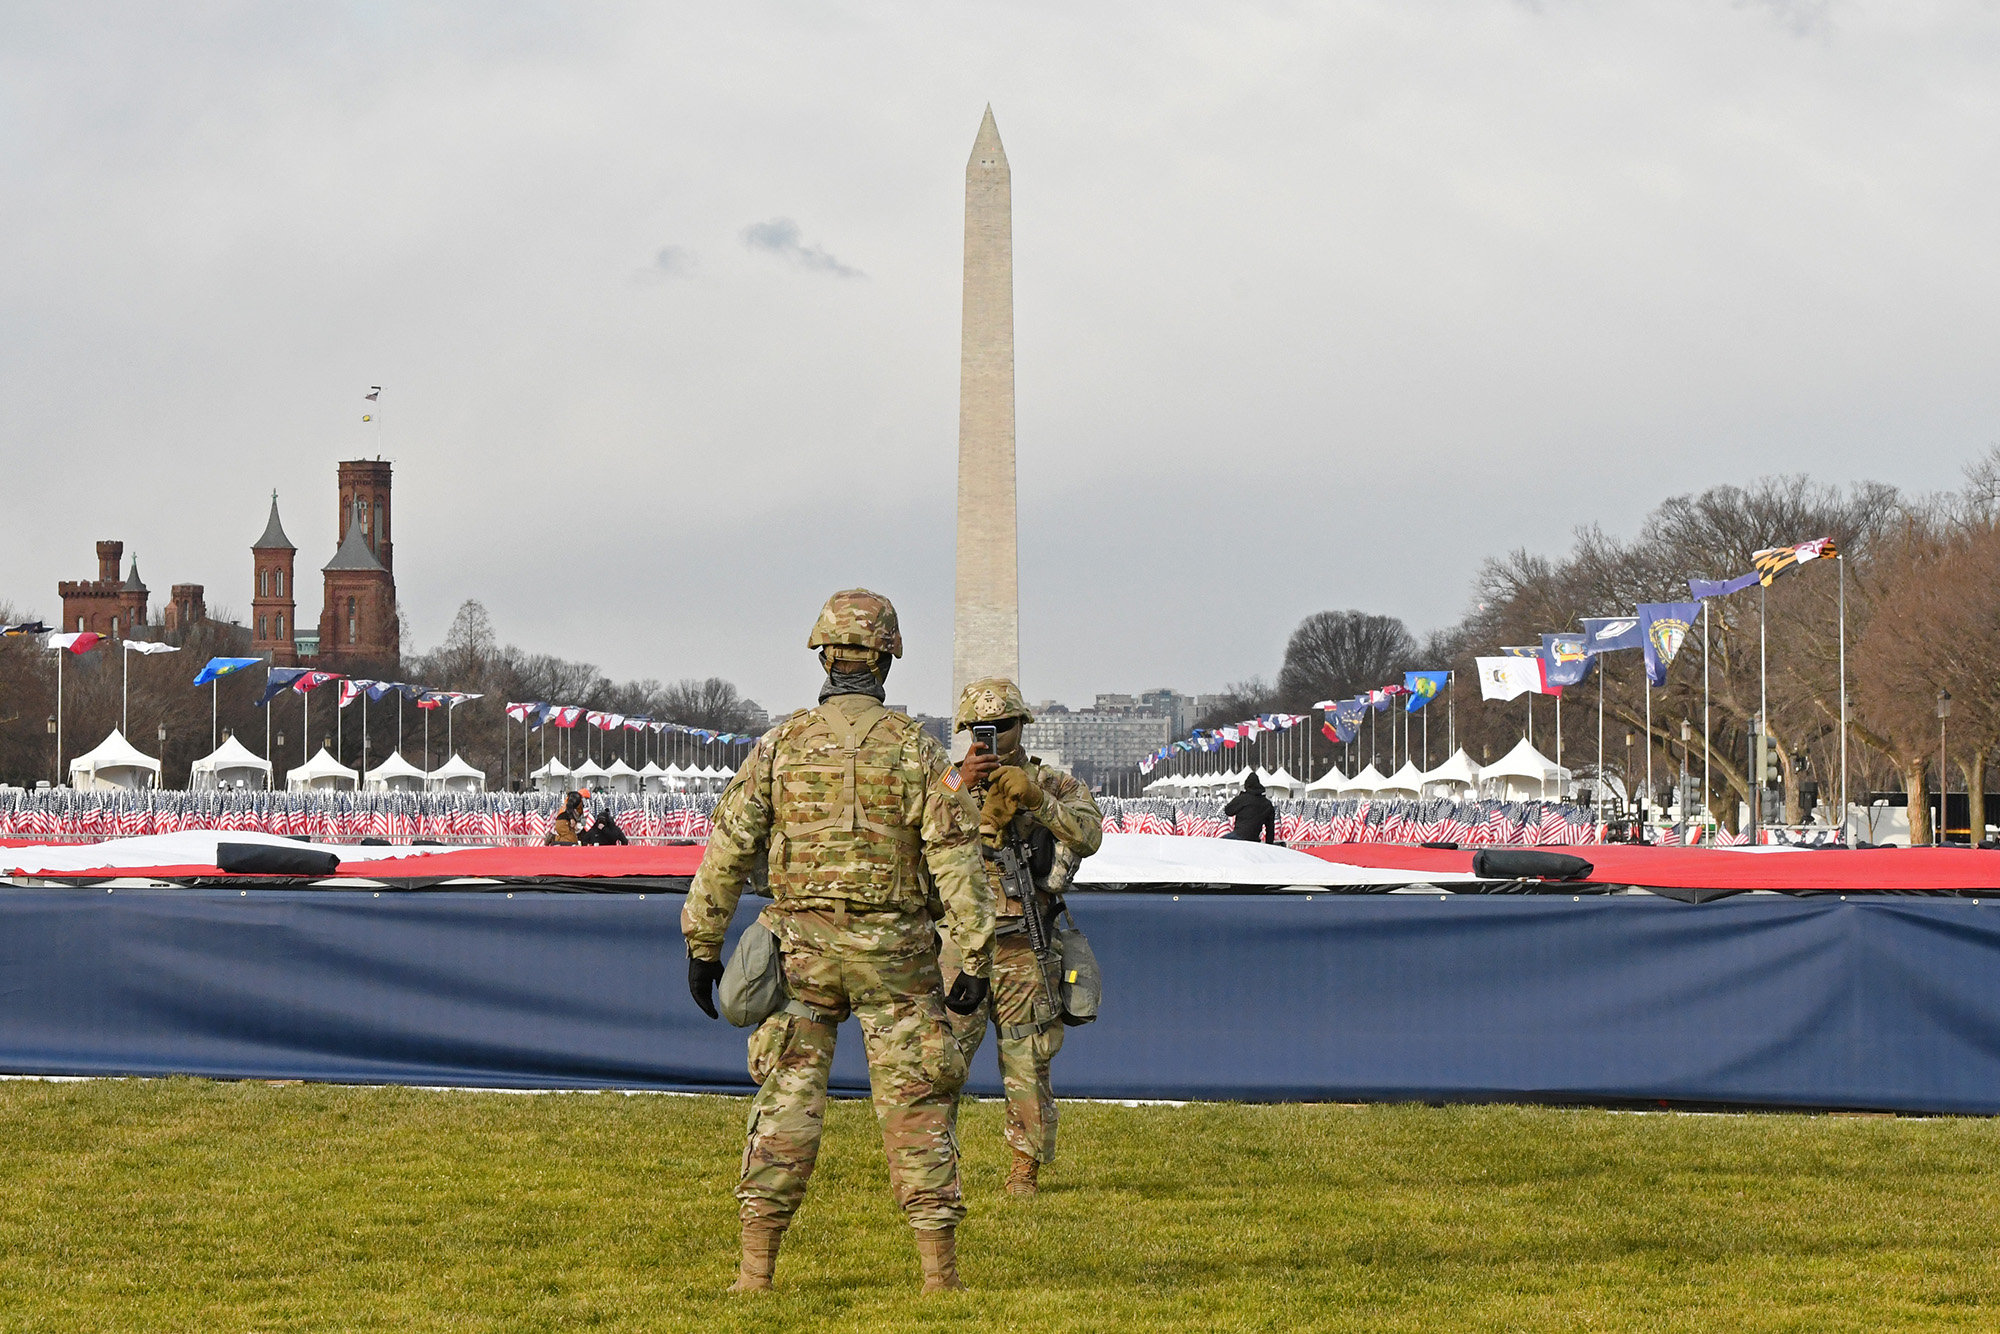 Members of the National Guard stand on the National Mall near the U.S. Capitol before the inauguration of President-elect Joe Biden and Vice President-elect Kamala Harris on Jan. 20, 2021, in Washington. (Stephanie Keith/Getty Images)